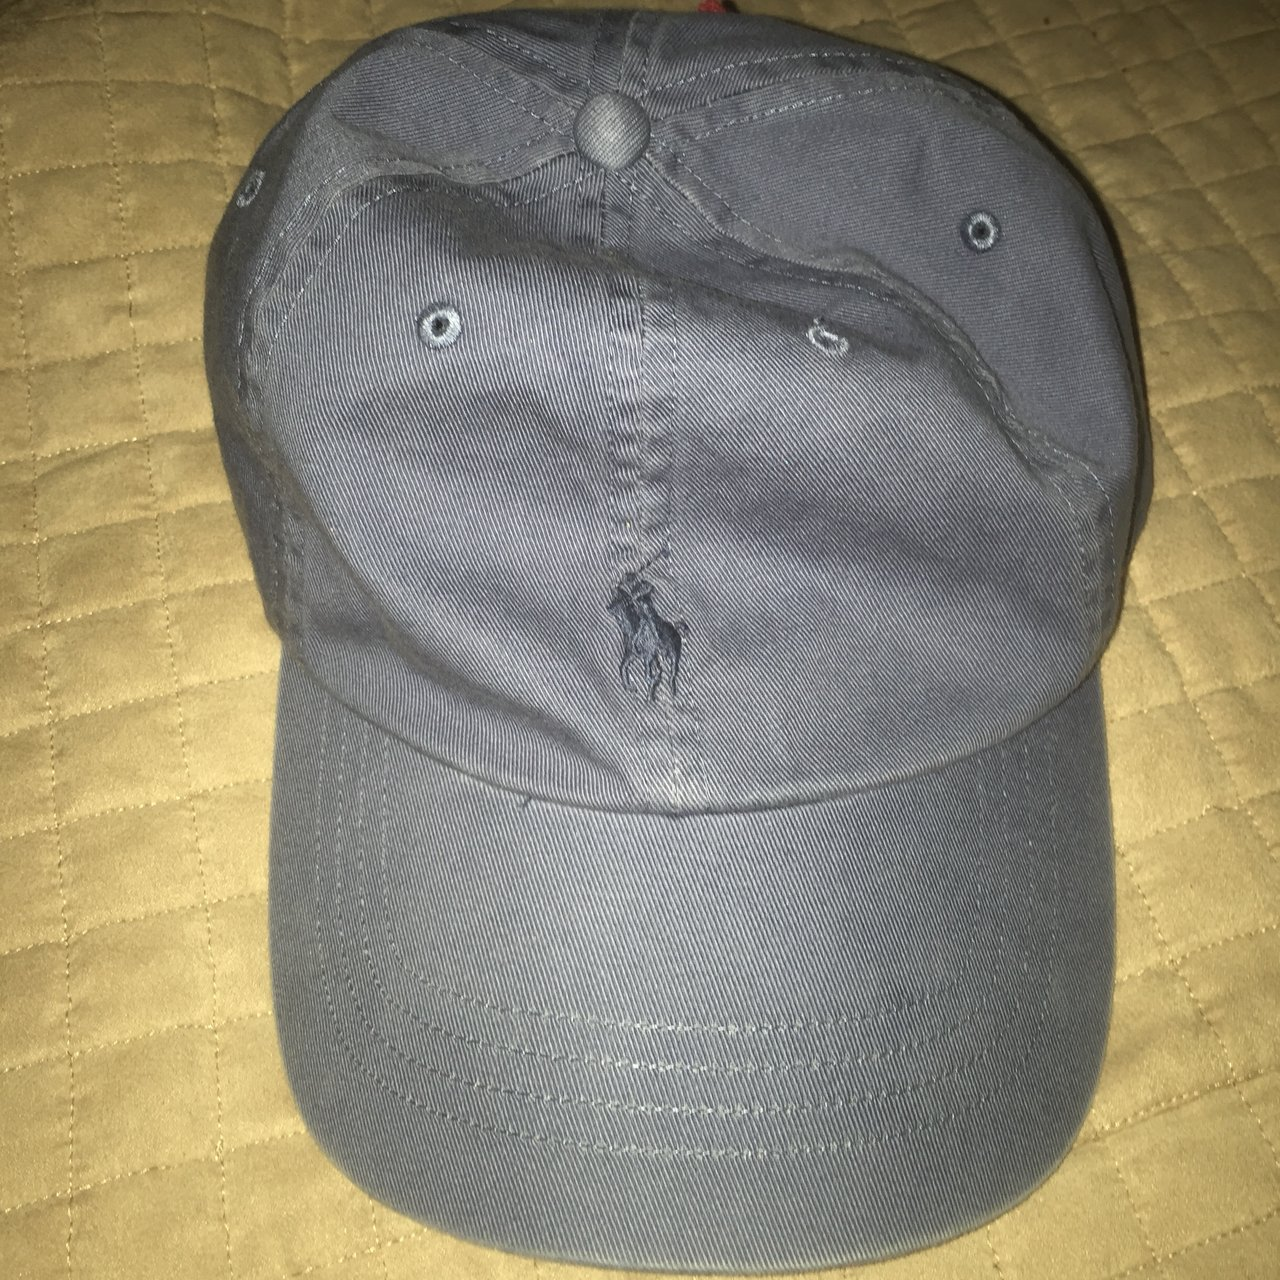 37bb1f9e008 Ralph Lauren hat